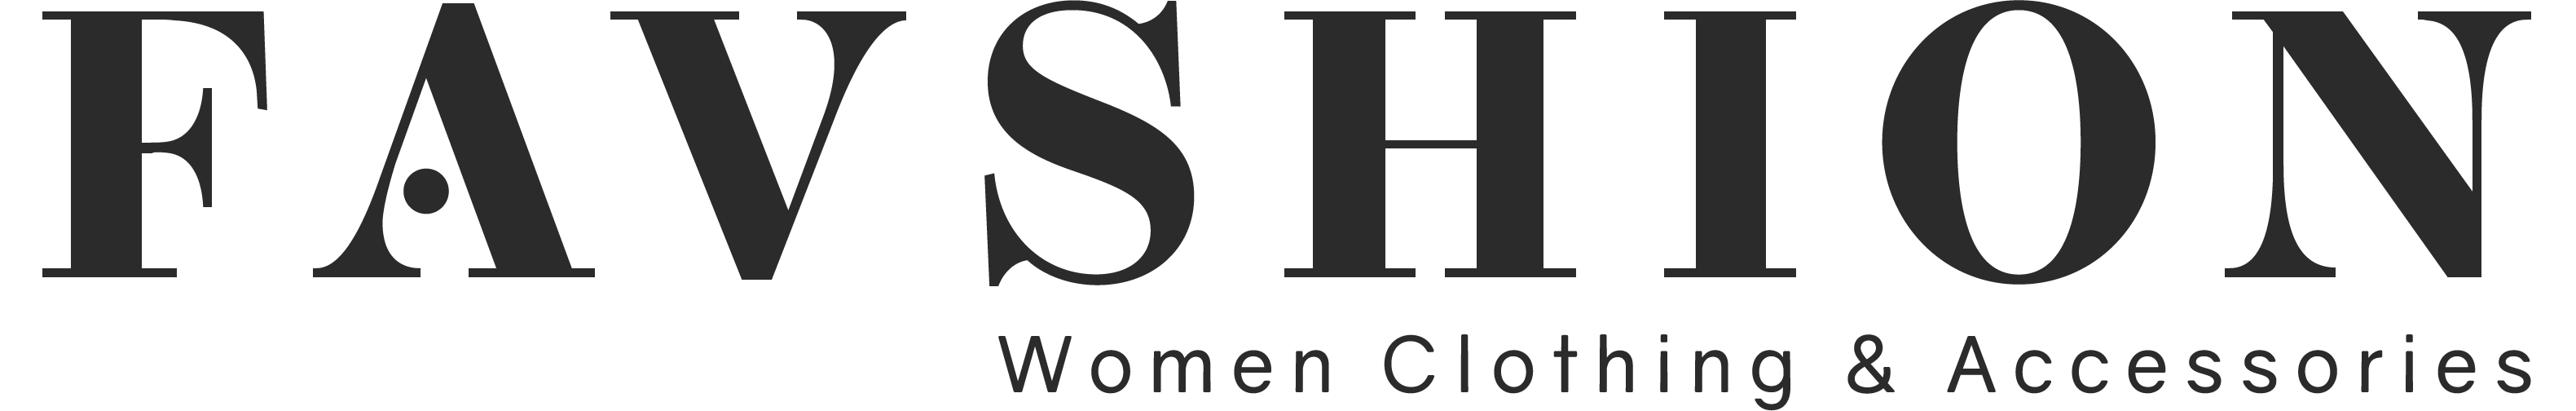 Favshion - Women Clothing & Accessories